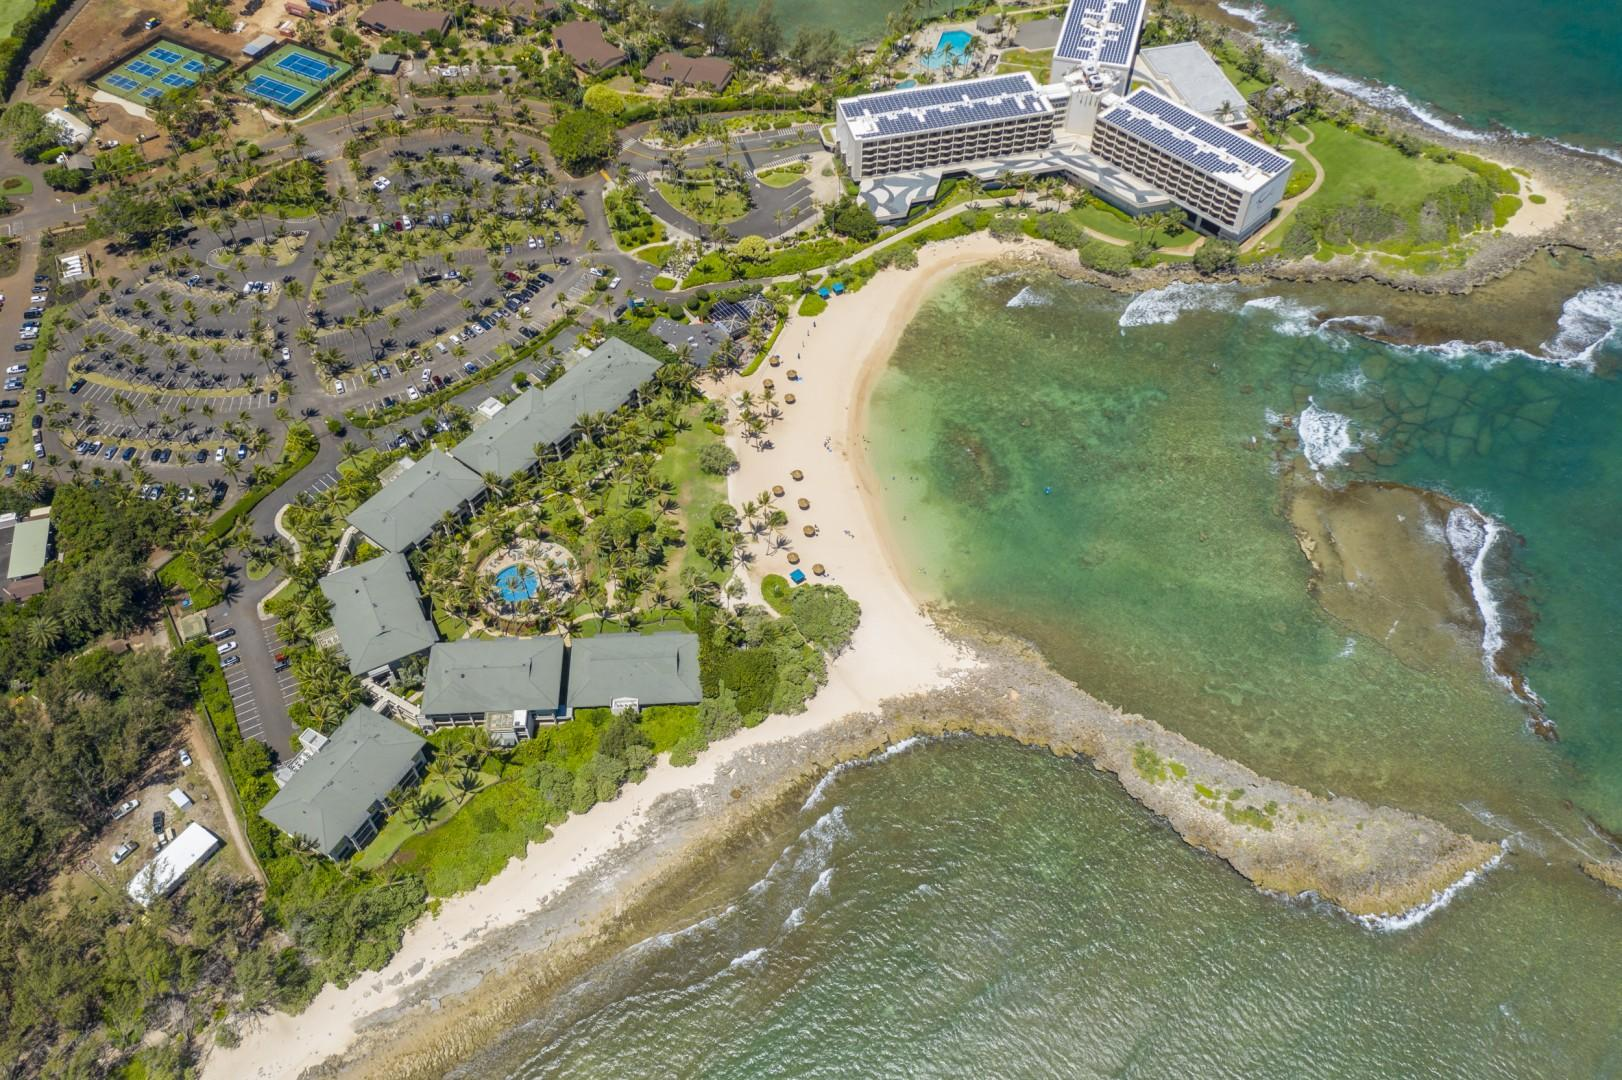 Aerial view of Ocean Villas